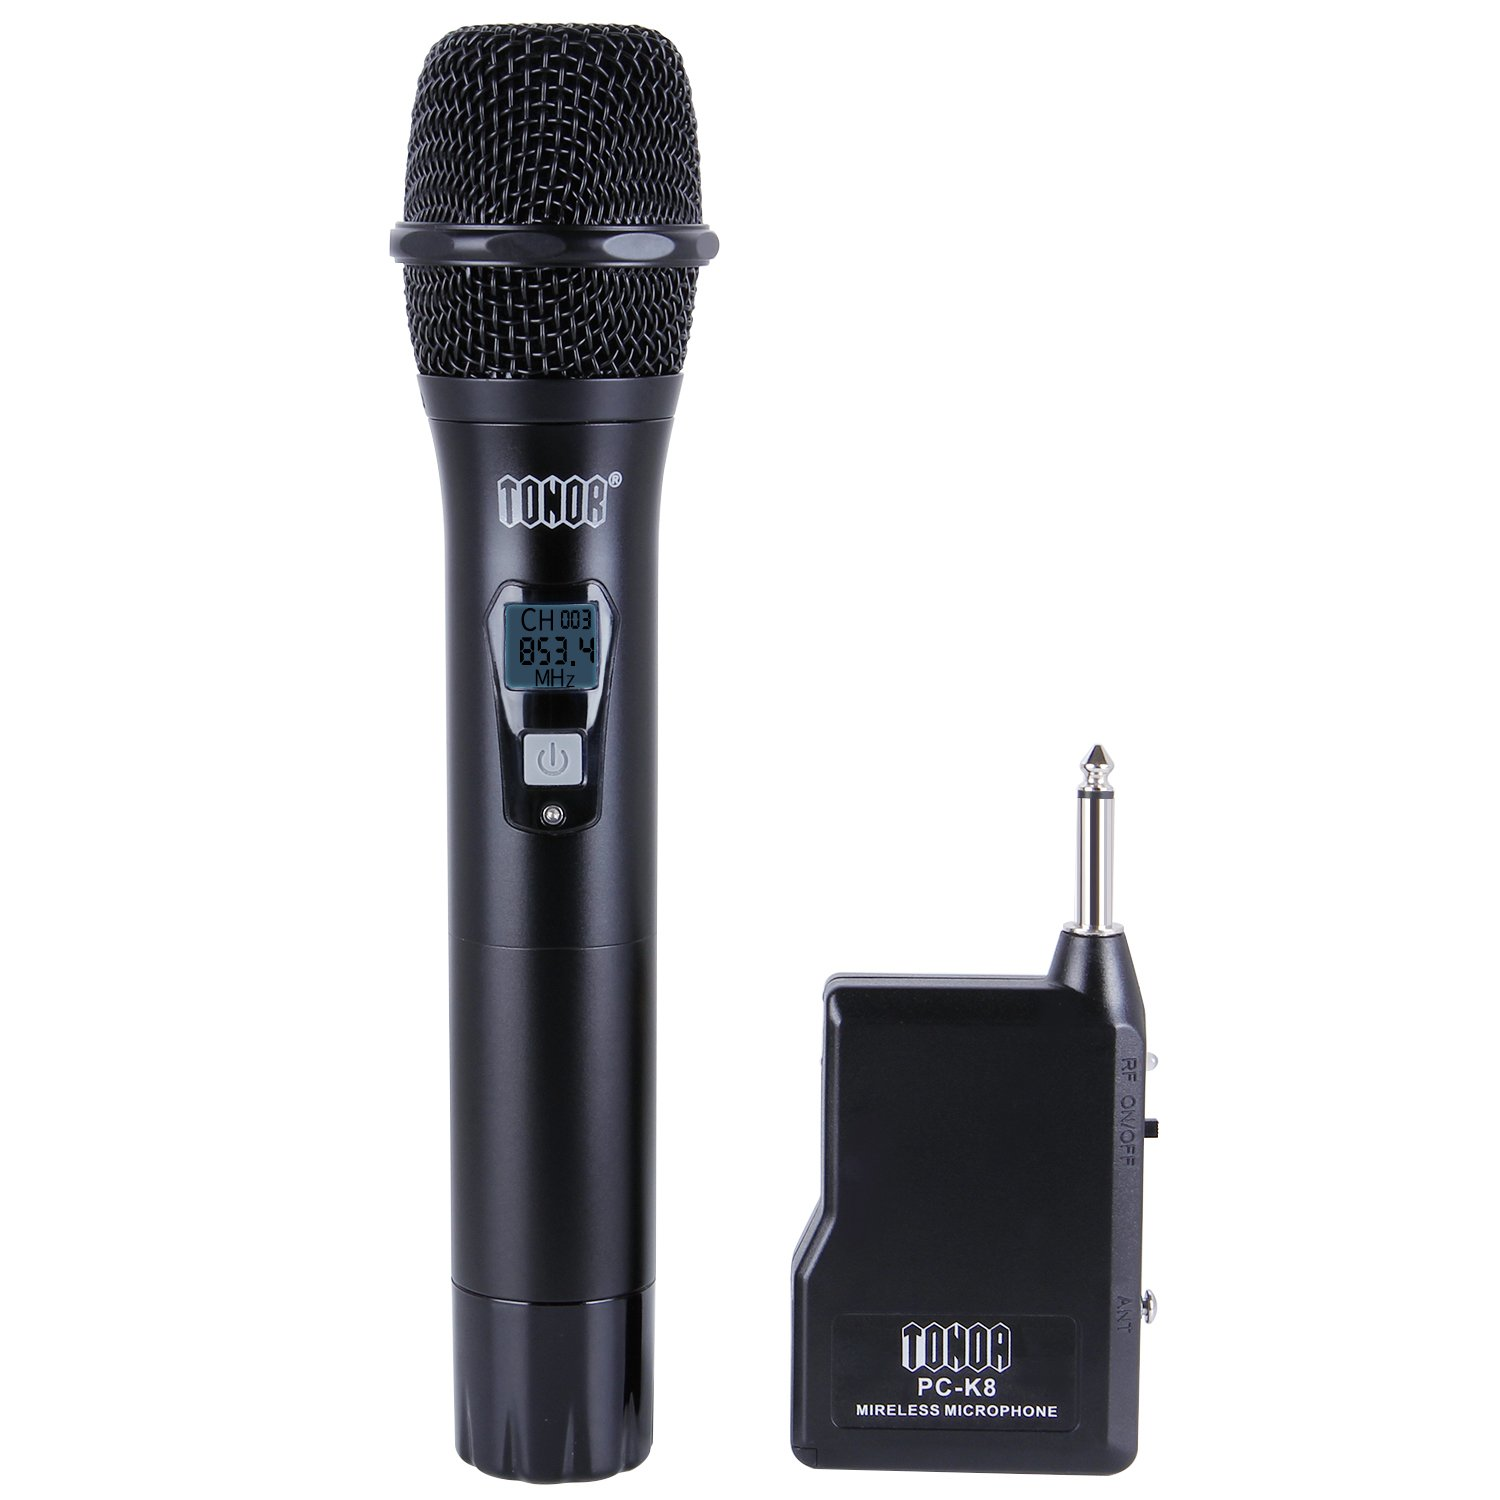 TONOR Handheld Wireless Microphone, VHF Vocal Audio Dynamic Mic for Outside Amplifier Party Wedding Entertainment Activity, Indoor Meeting Karaoke Recording